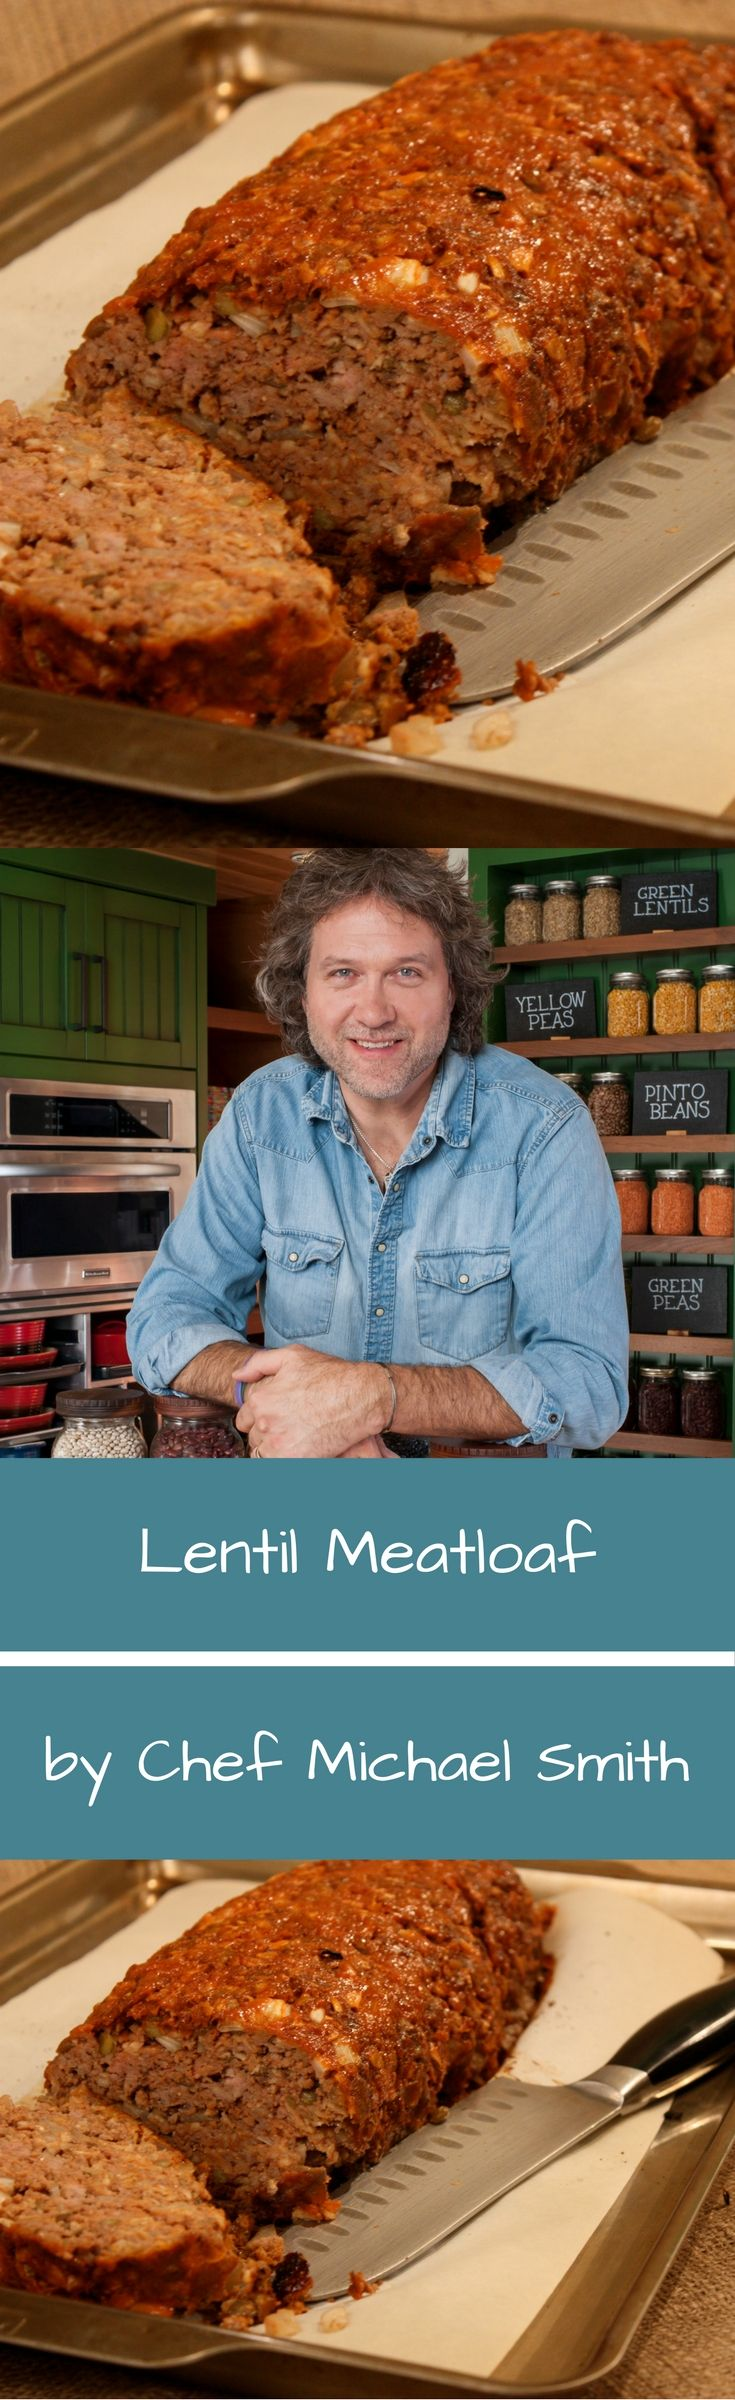 Everybody loves meatloaf; it's one of our all time favourite comfort foods. Especially when you know its rich hearty flavours come with a hidden nutritional powerhouse. Lentils easily stir into the mix.